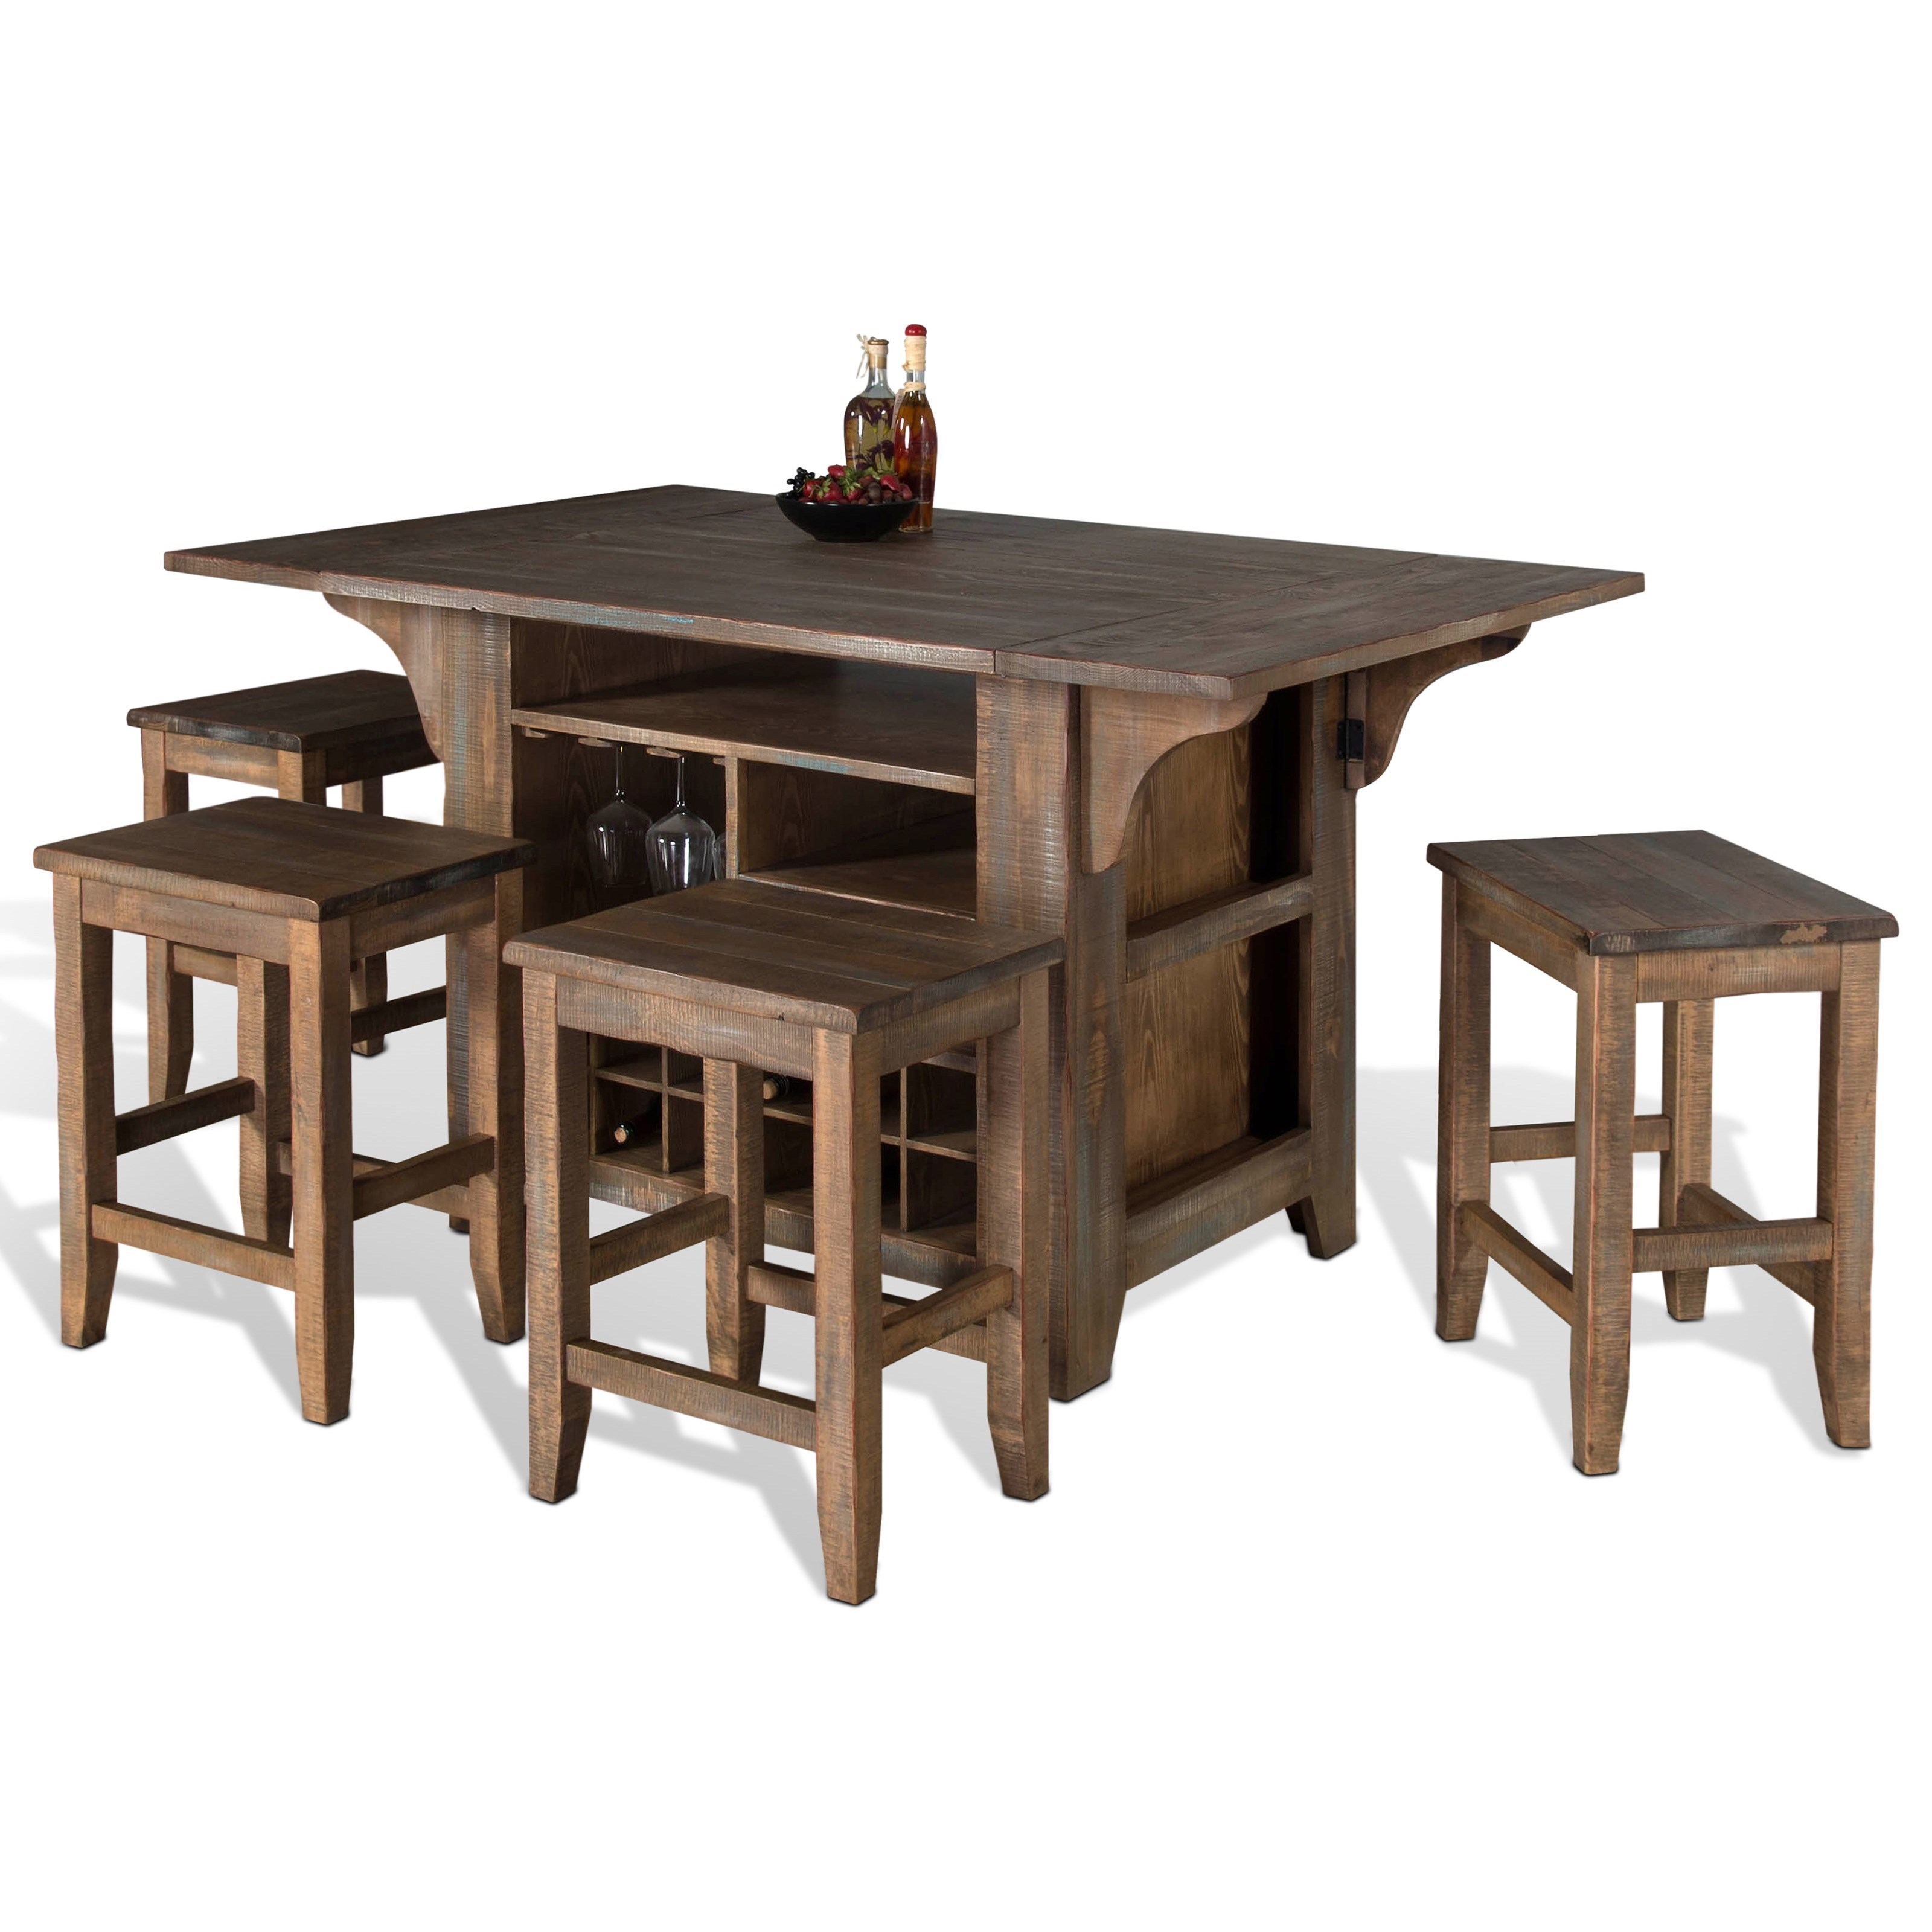 kitchen island table with chairs designs puebla 5 kitchen island with drop 8223